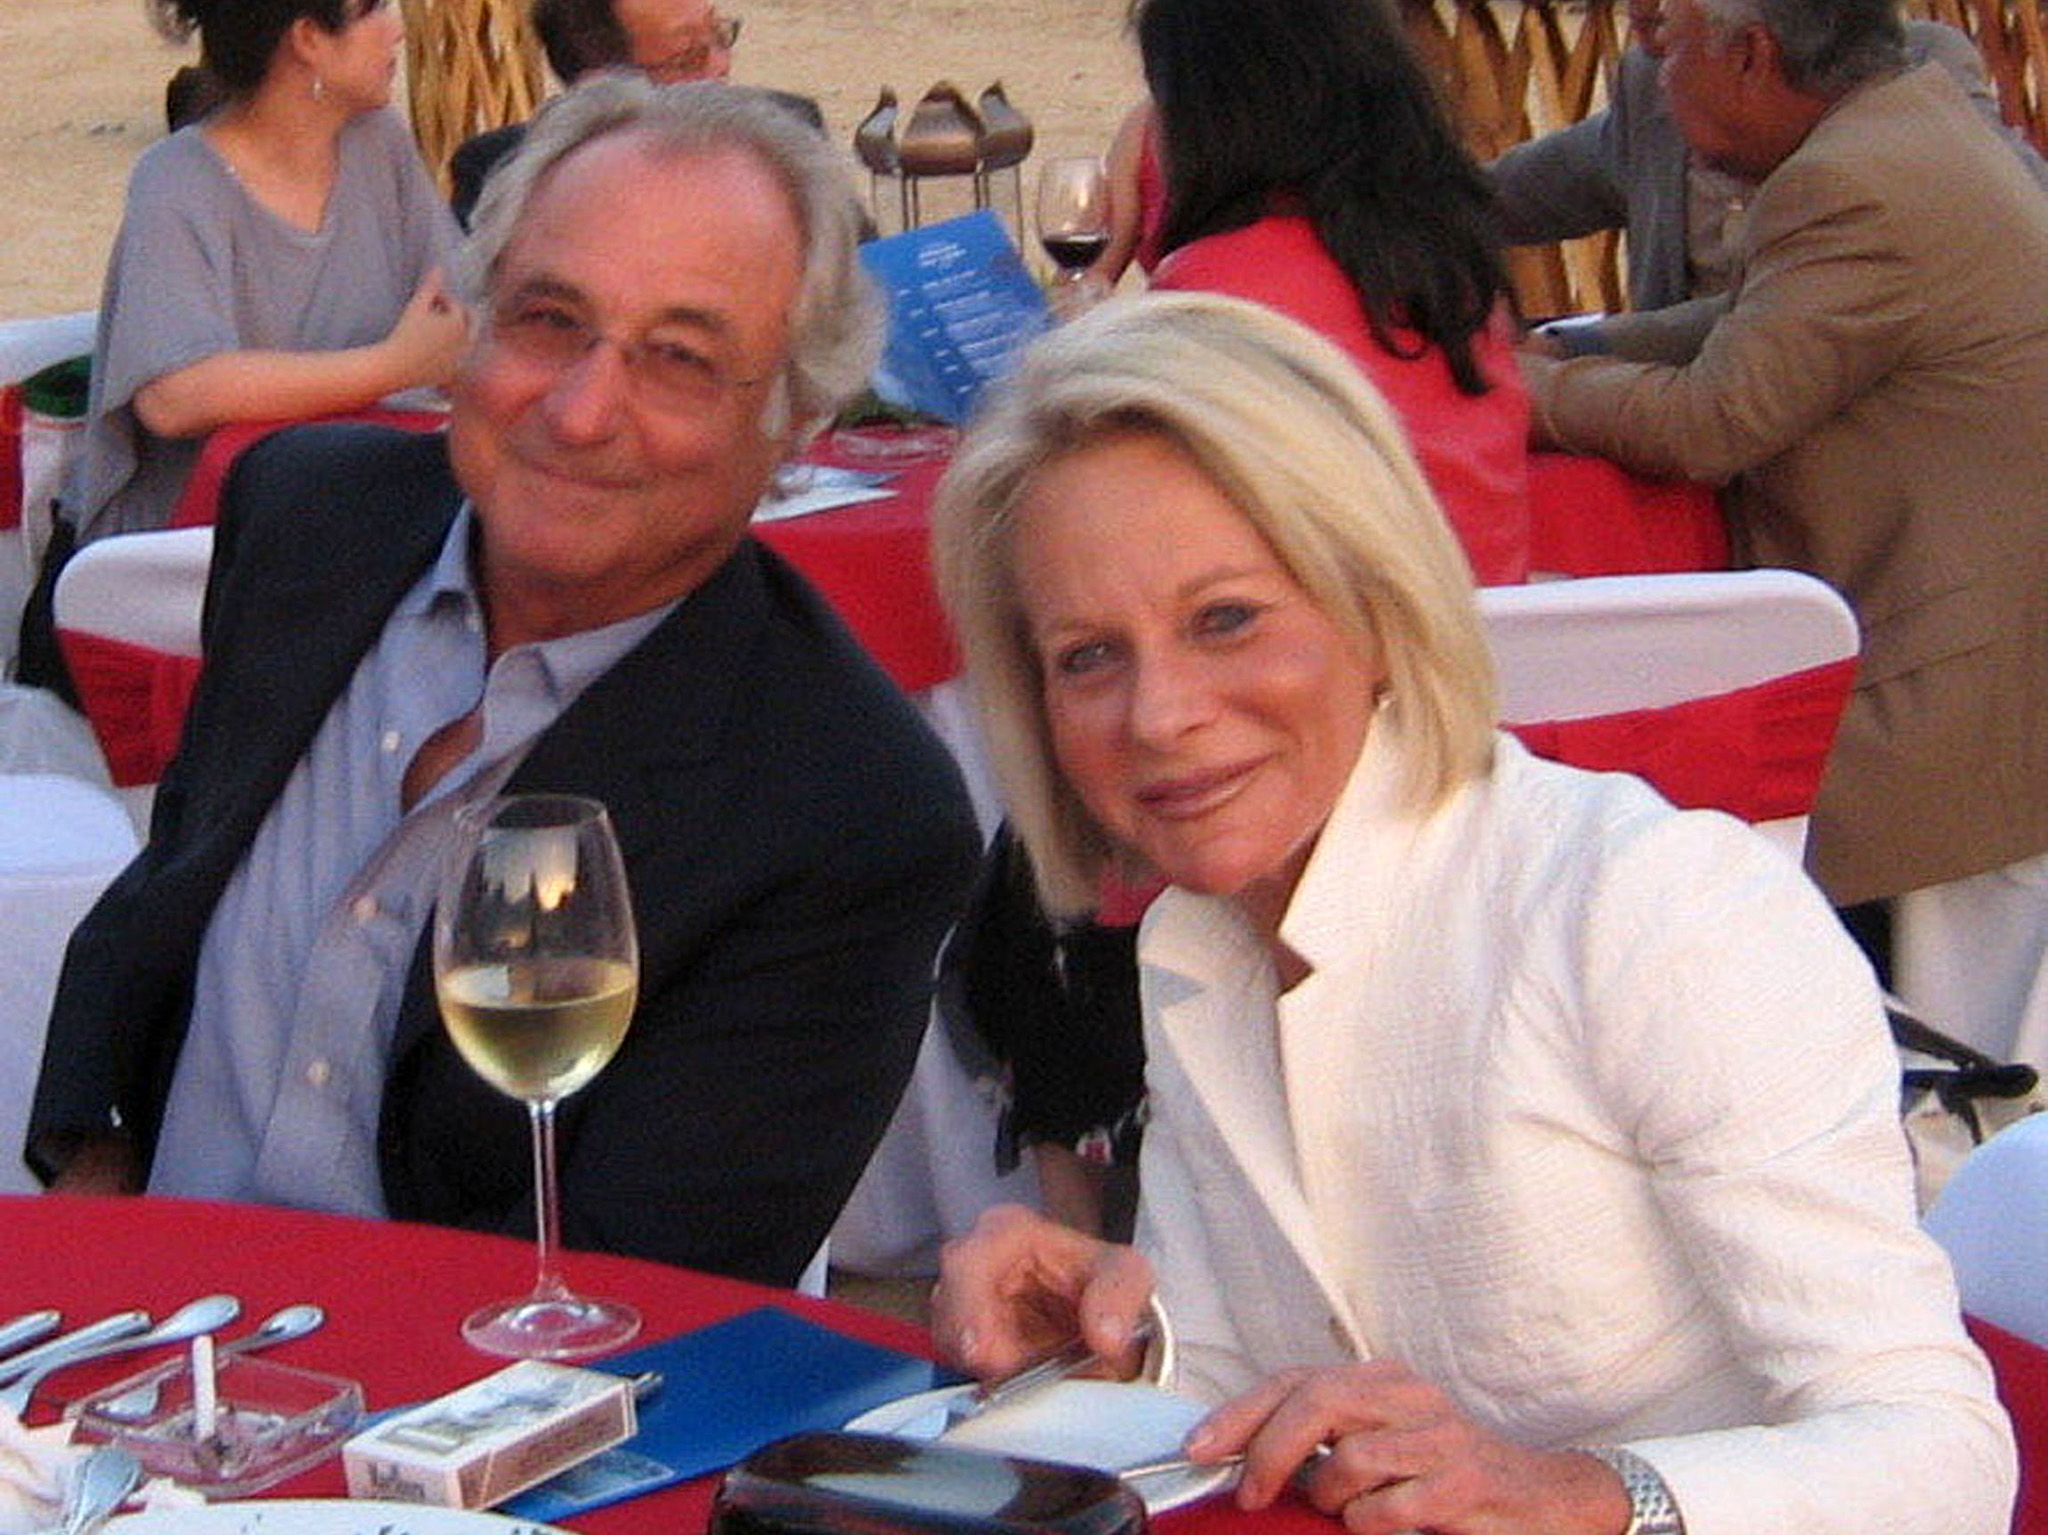 Bernard Madoff and wife Ruth at a party in the desert near Cabo san Lucas. This image is from In... [Photo of the day - May 2019]